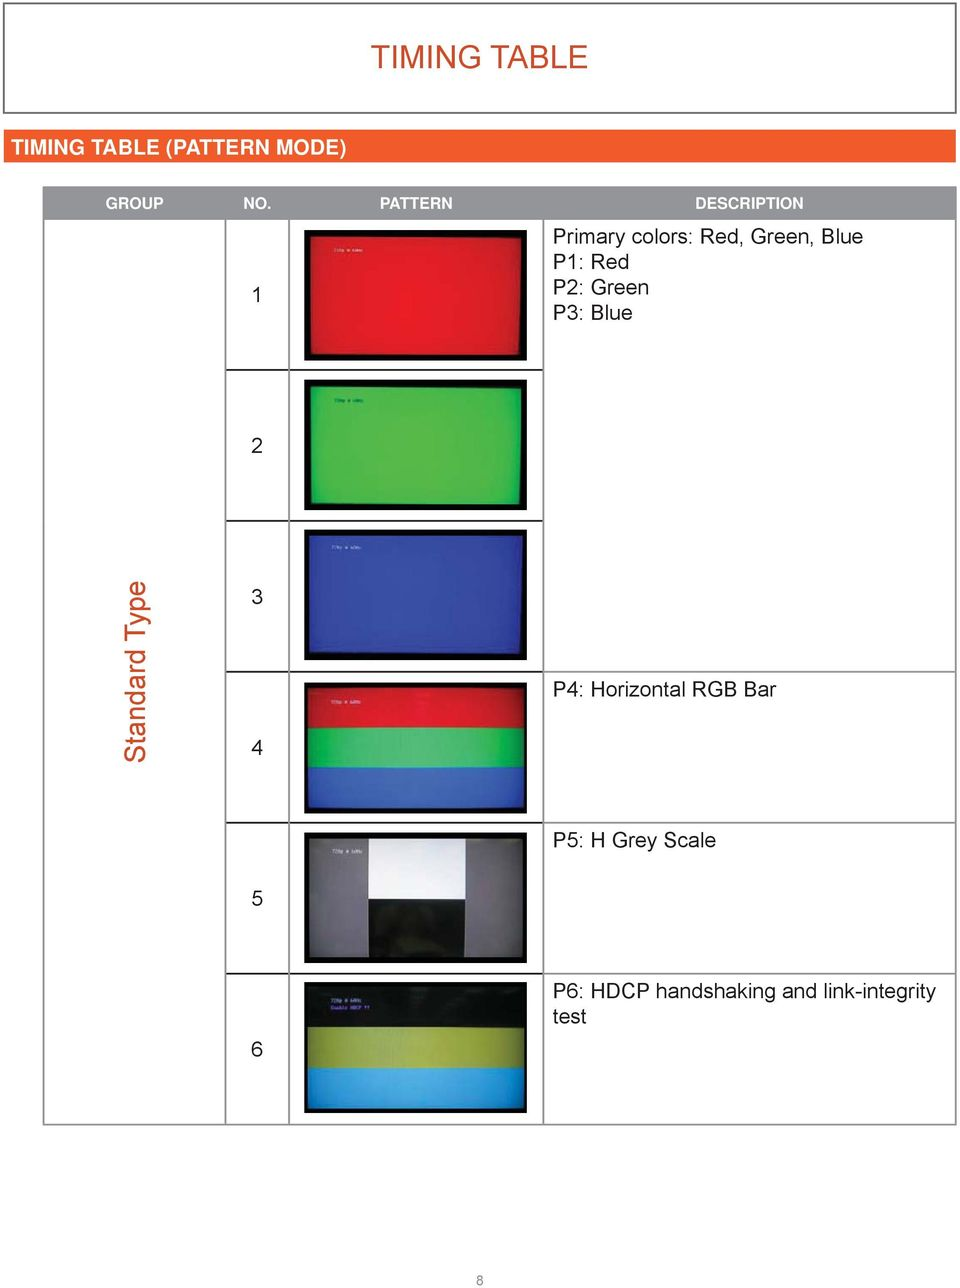 Red P2: Green P3: Blue 2 Standard Type 3 4 P4: Horizontal